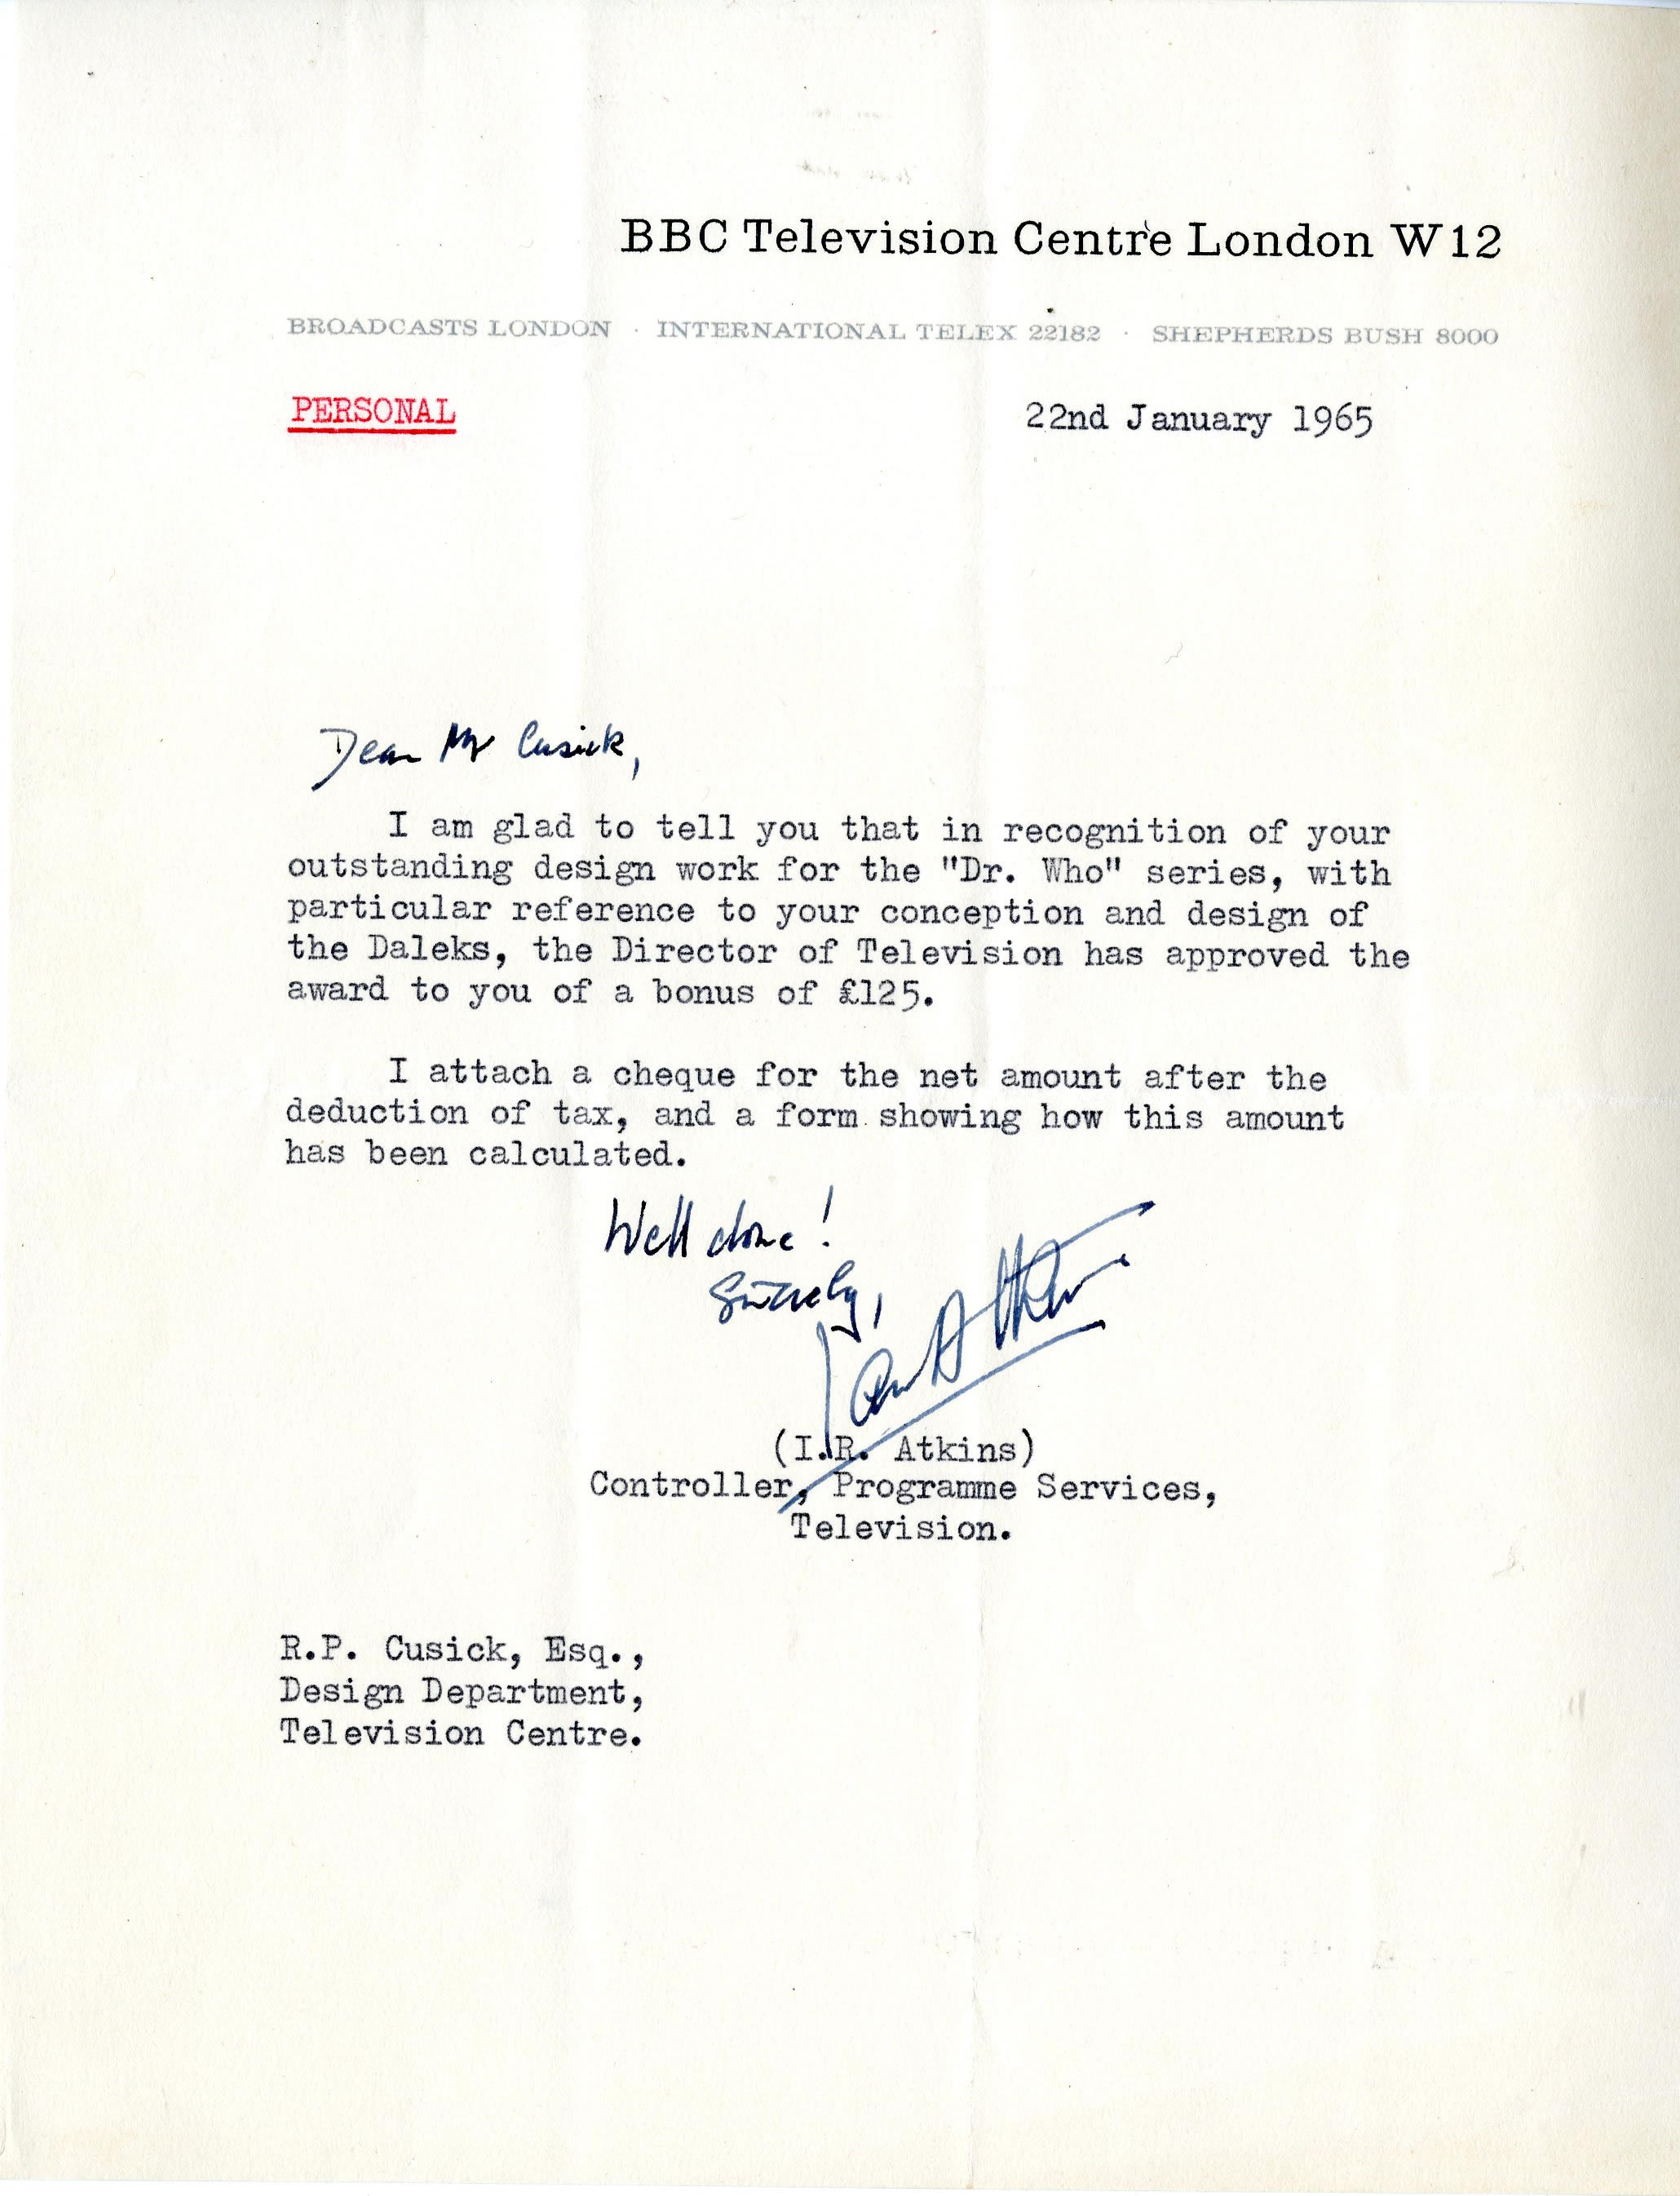 Letter to Raymond Cusick from the Controller, Programme Services, Television awarding him a bonus for his design work on Doctor Who (from the Raymond Cusick personal collection)